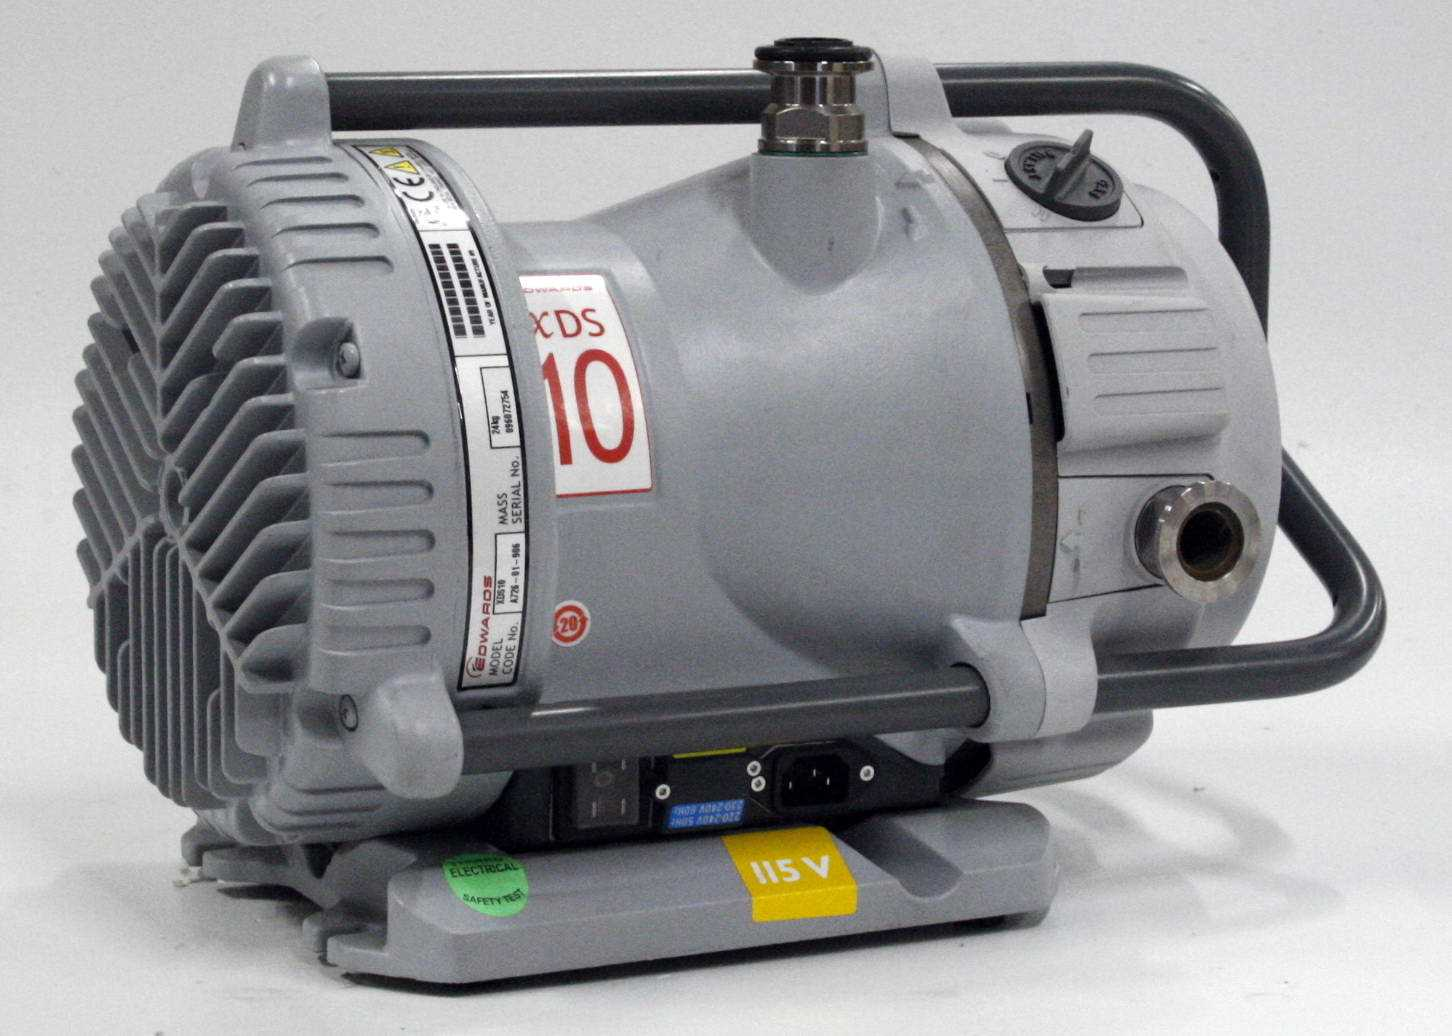 Edwards XDS10 Dry Scroll Vacuum Pump